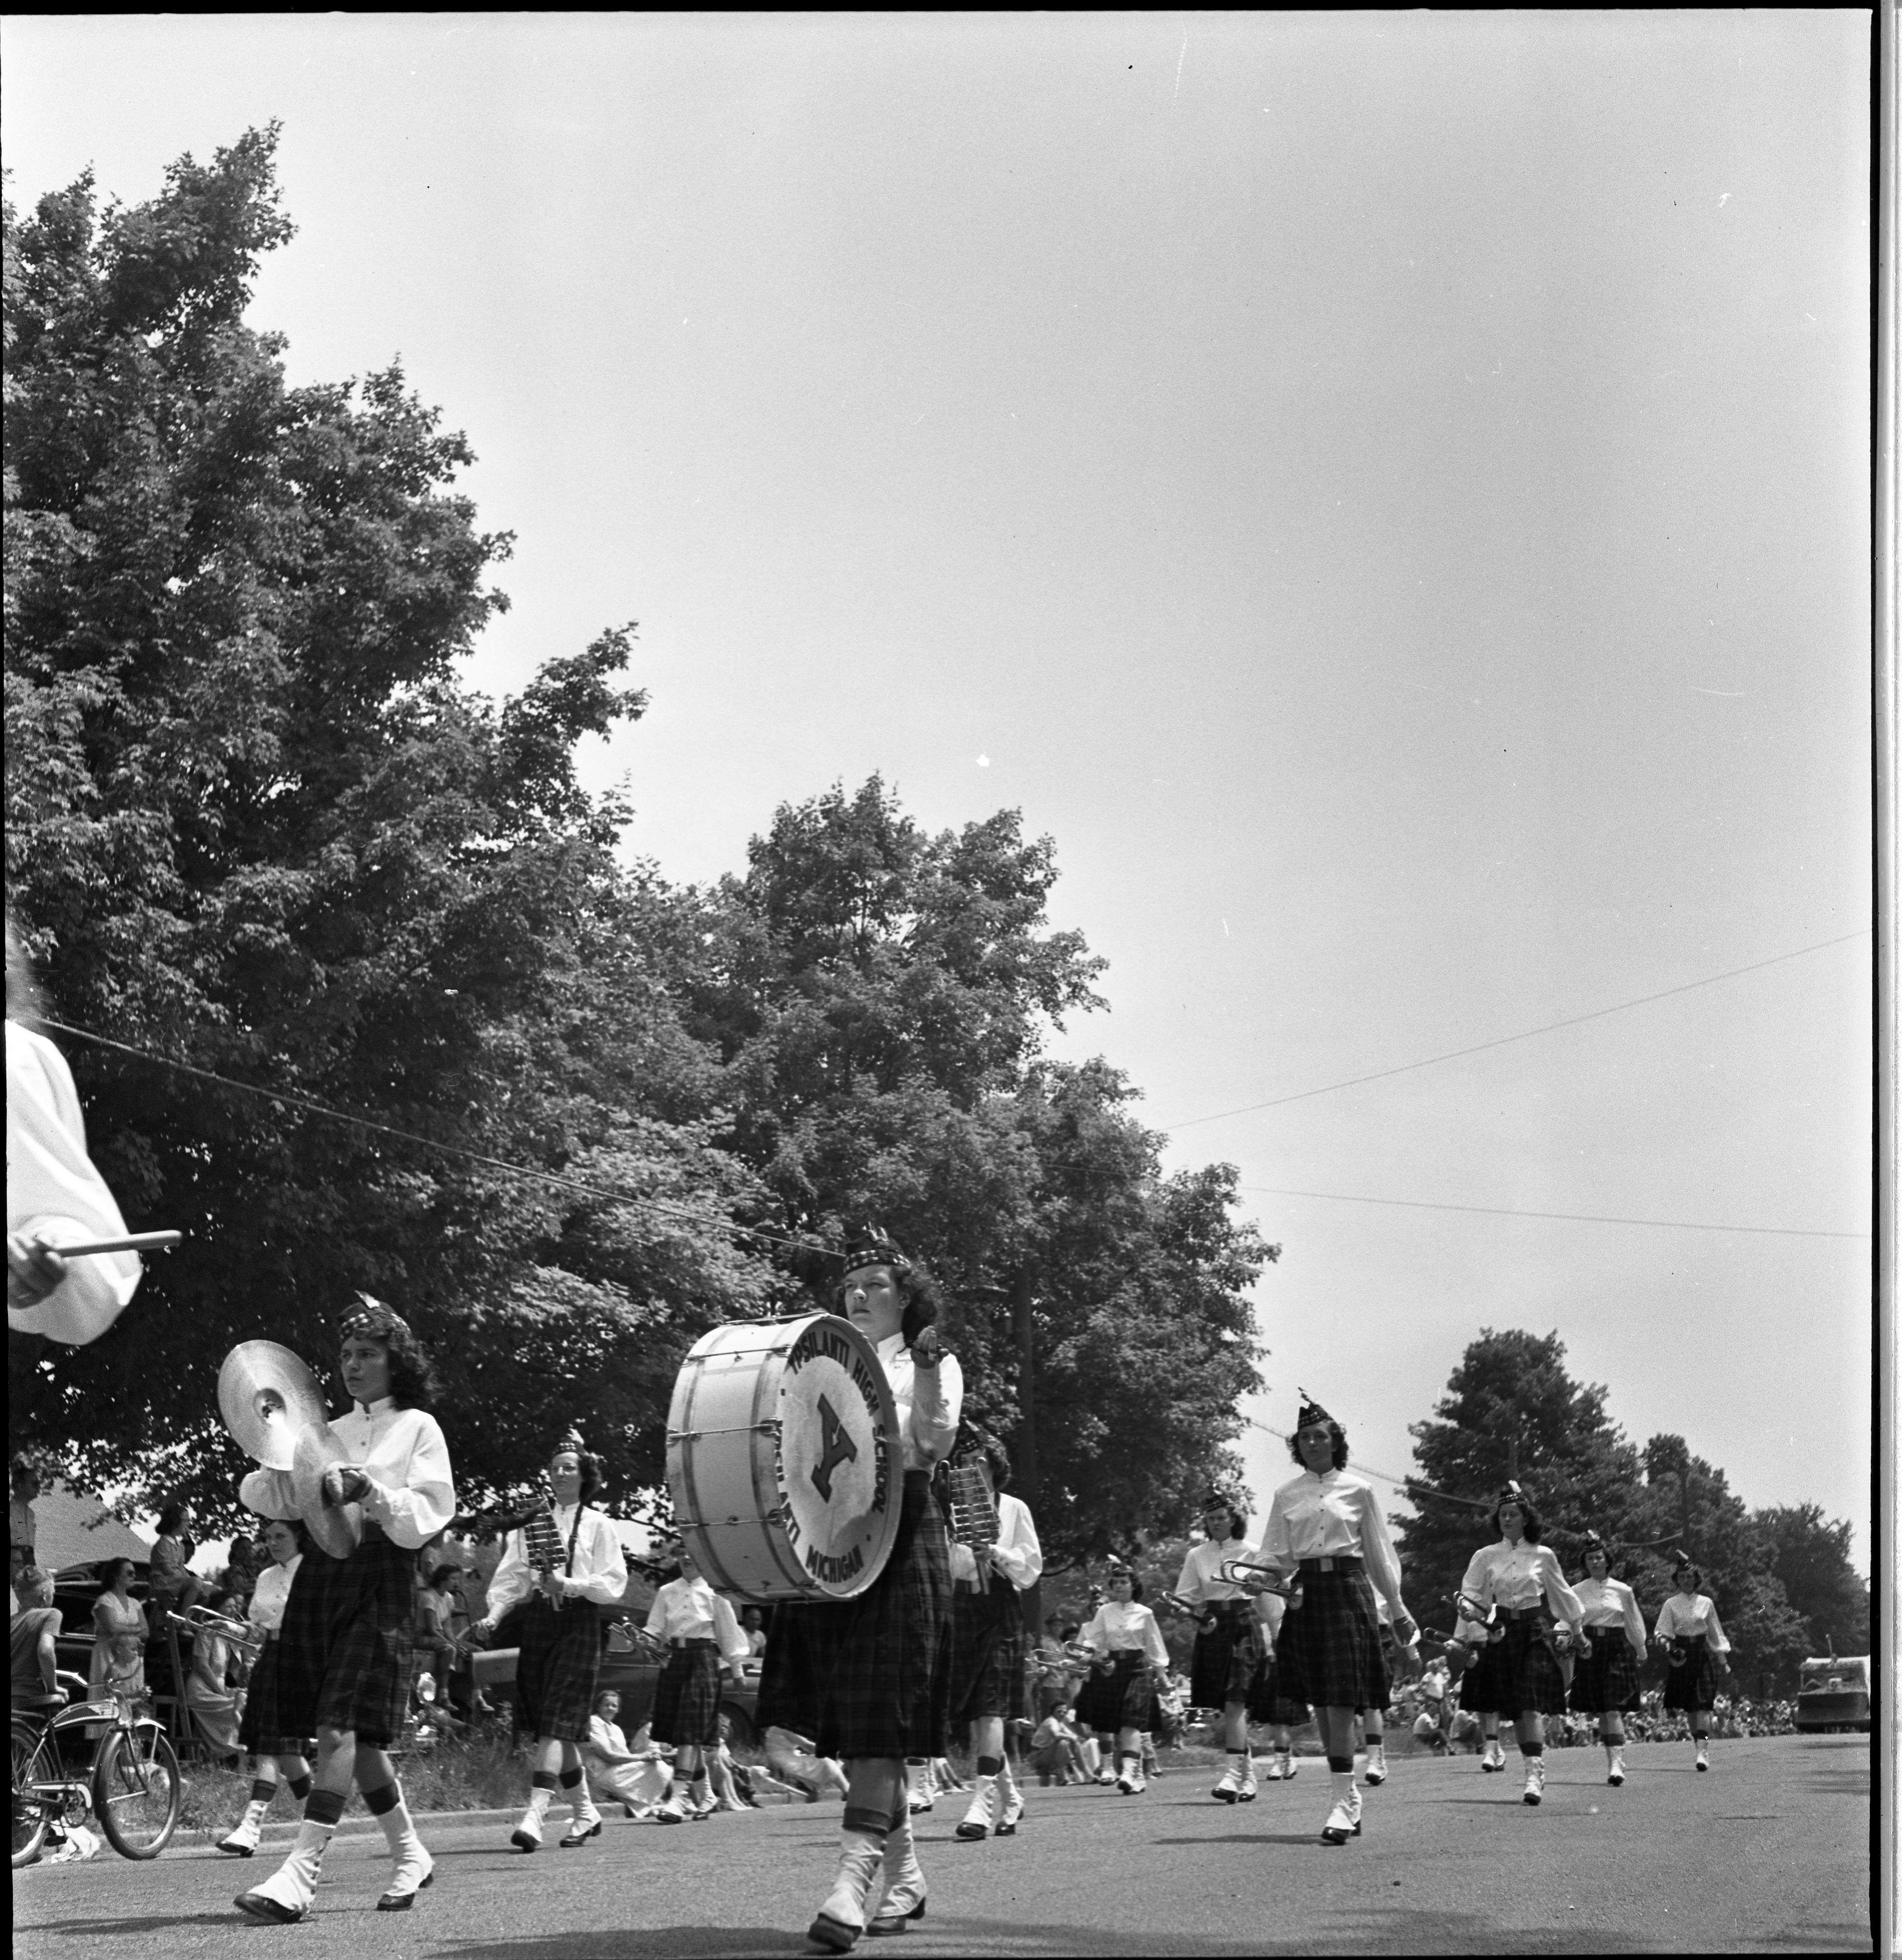 Ypsilanti High School Marching Band In The Ypsilanti Fourth Of July Parade, July 1949 image